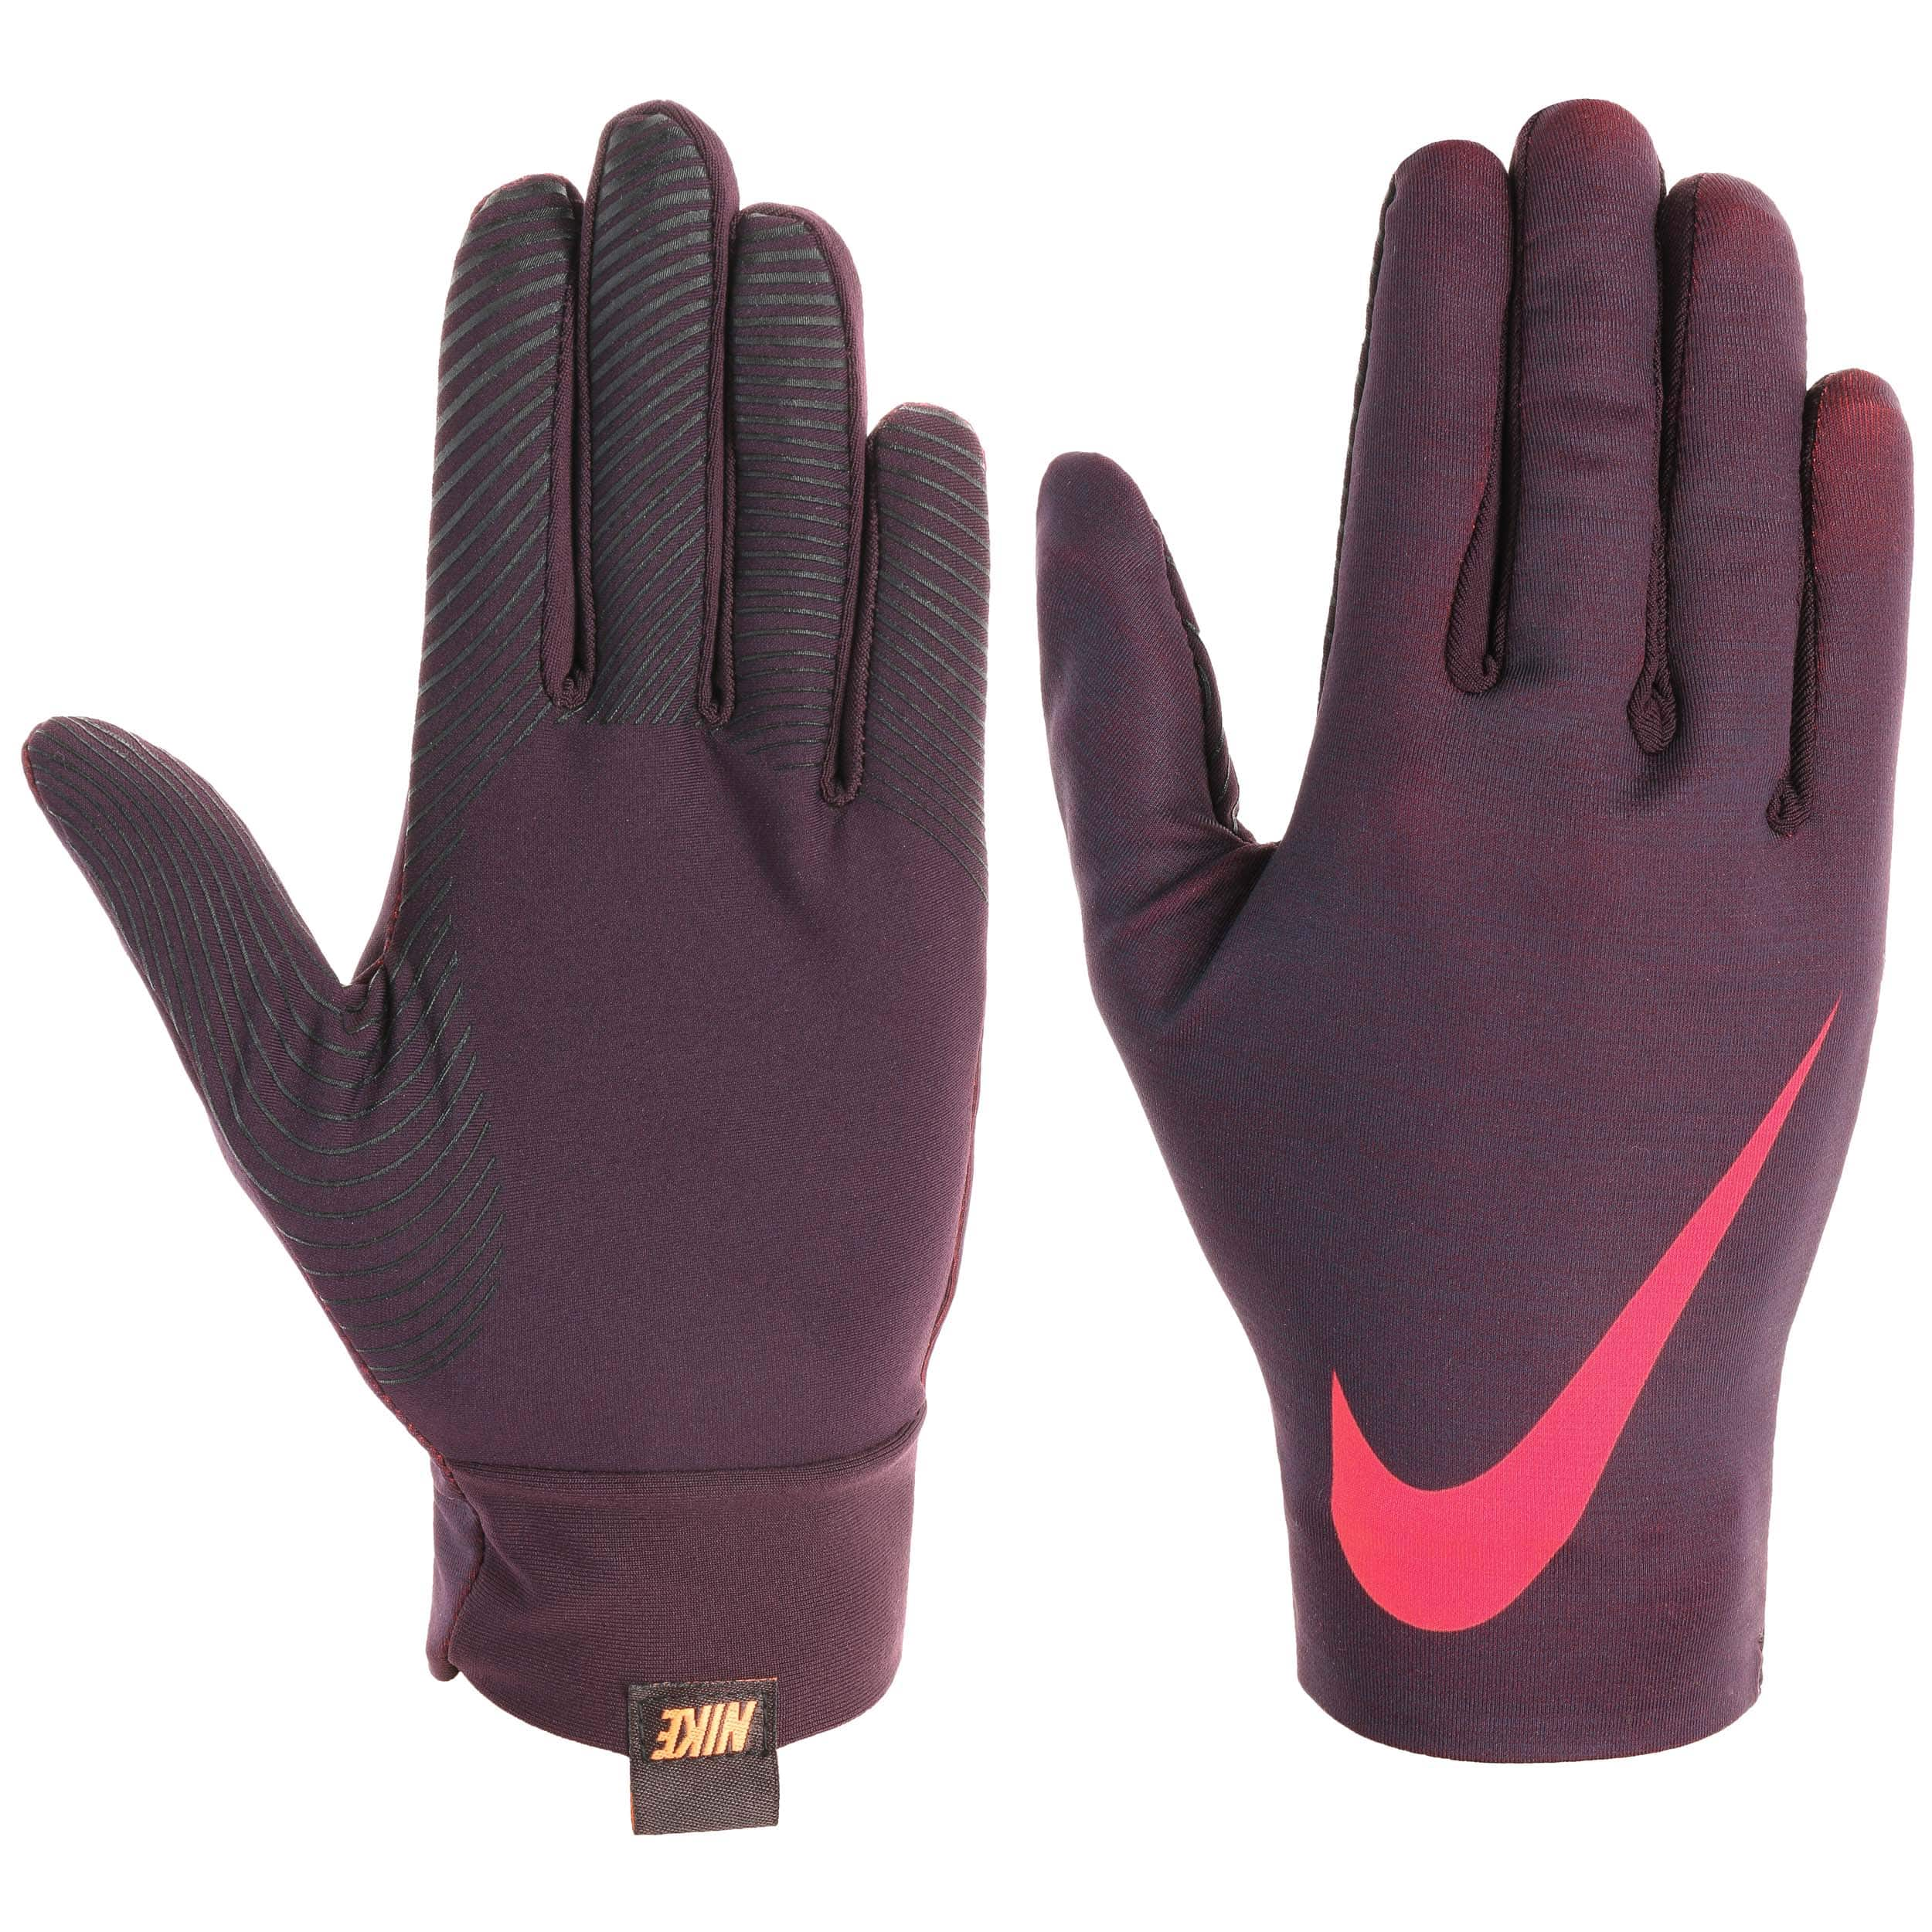 Nike Gloves Touch Screen: Base Layers Touchscreen Gloves By Nike, EUR 29,95 --> Hats